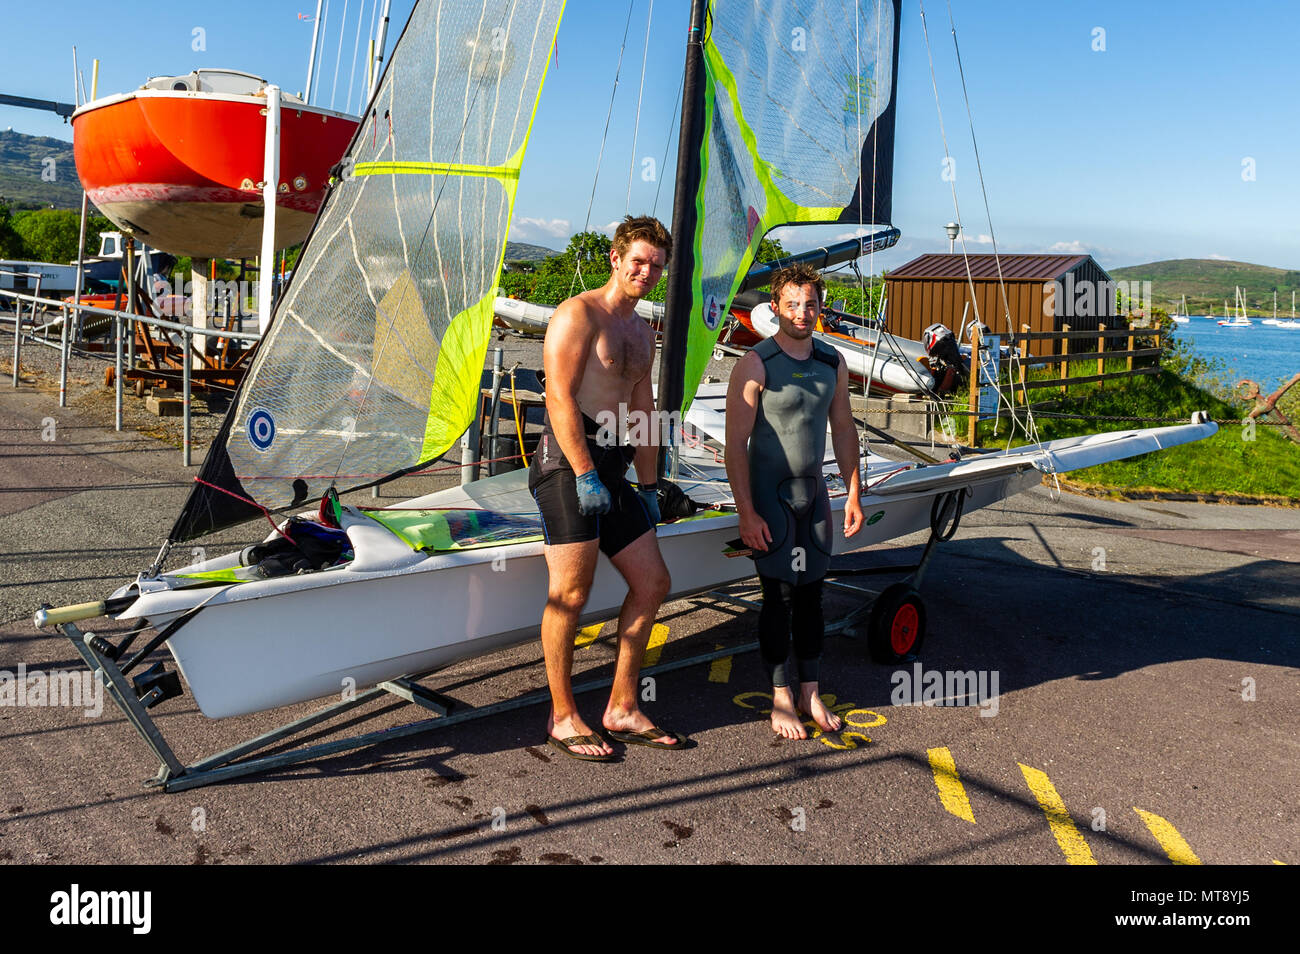 Schull, Ireland. 28th May, 2018.  Tokyo 2020 Olympic hopefuls Oisín O'Driscoll and Mark Hassett trained in their 49er in Schull on a blisteringly hot day in Schull. Met Éireann has forecast a warm evening with hazy sunshine and the odd shower with lows of 10 to 14 C. Credit: Andy Gibson/Alamy Live News. - Stock Image